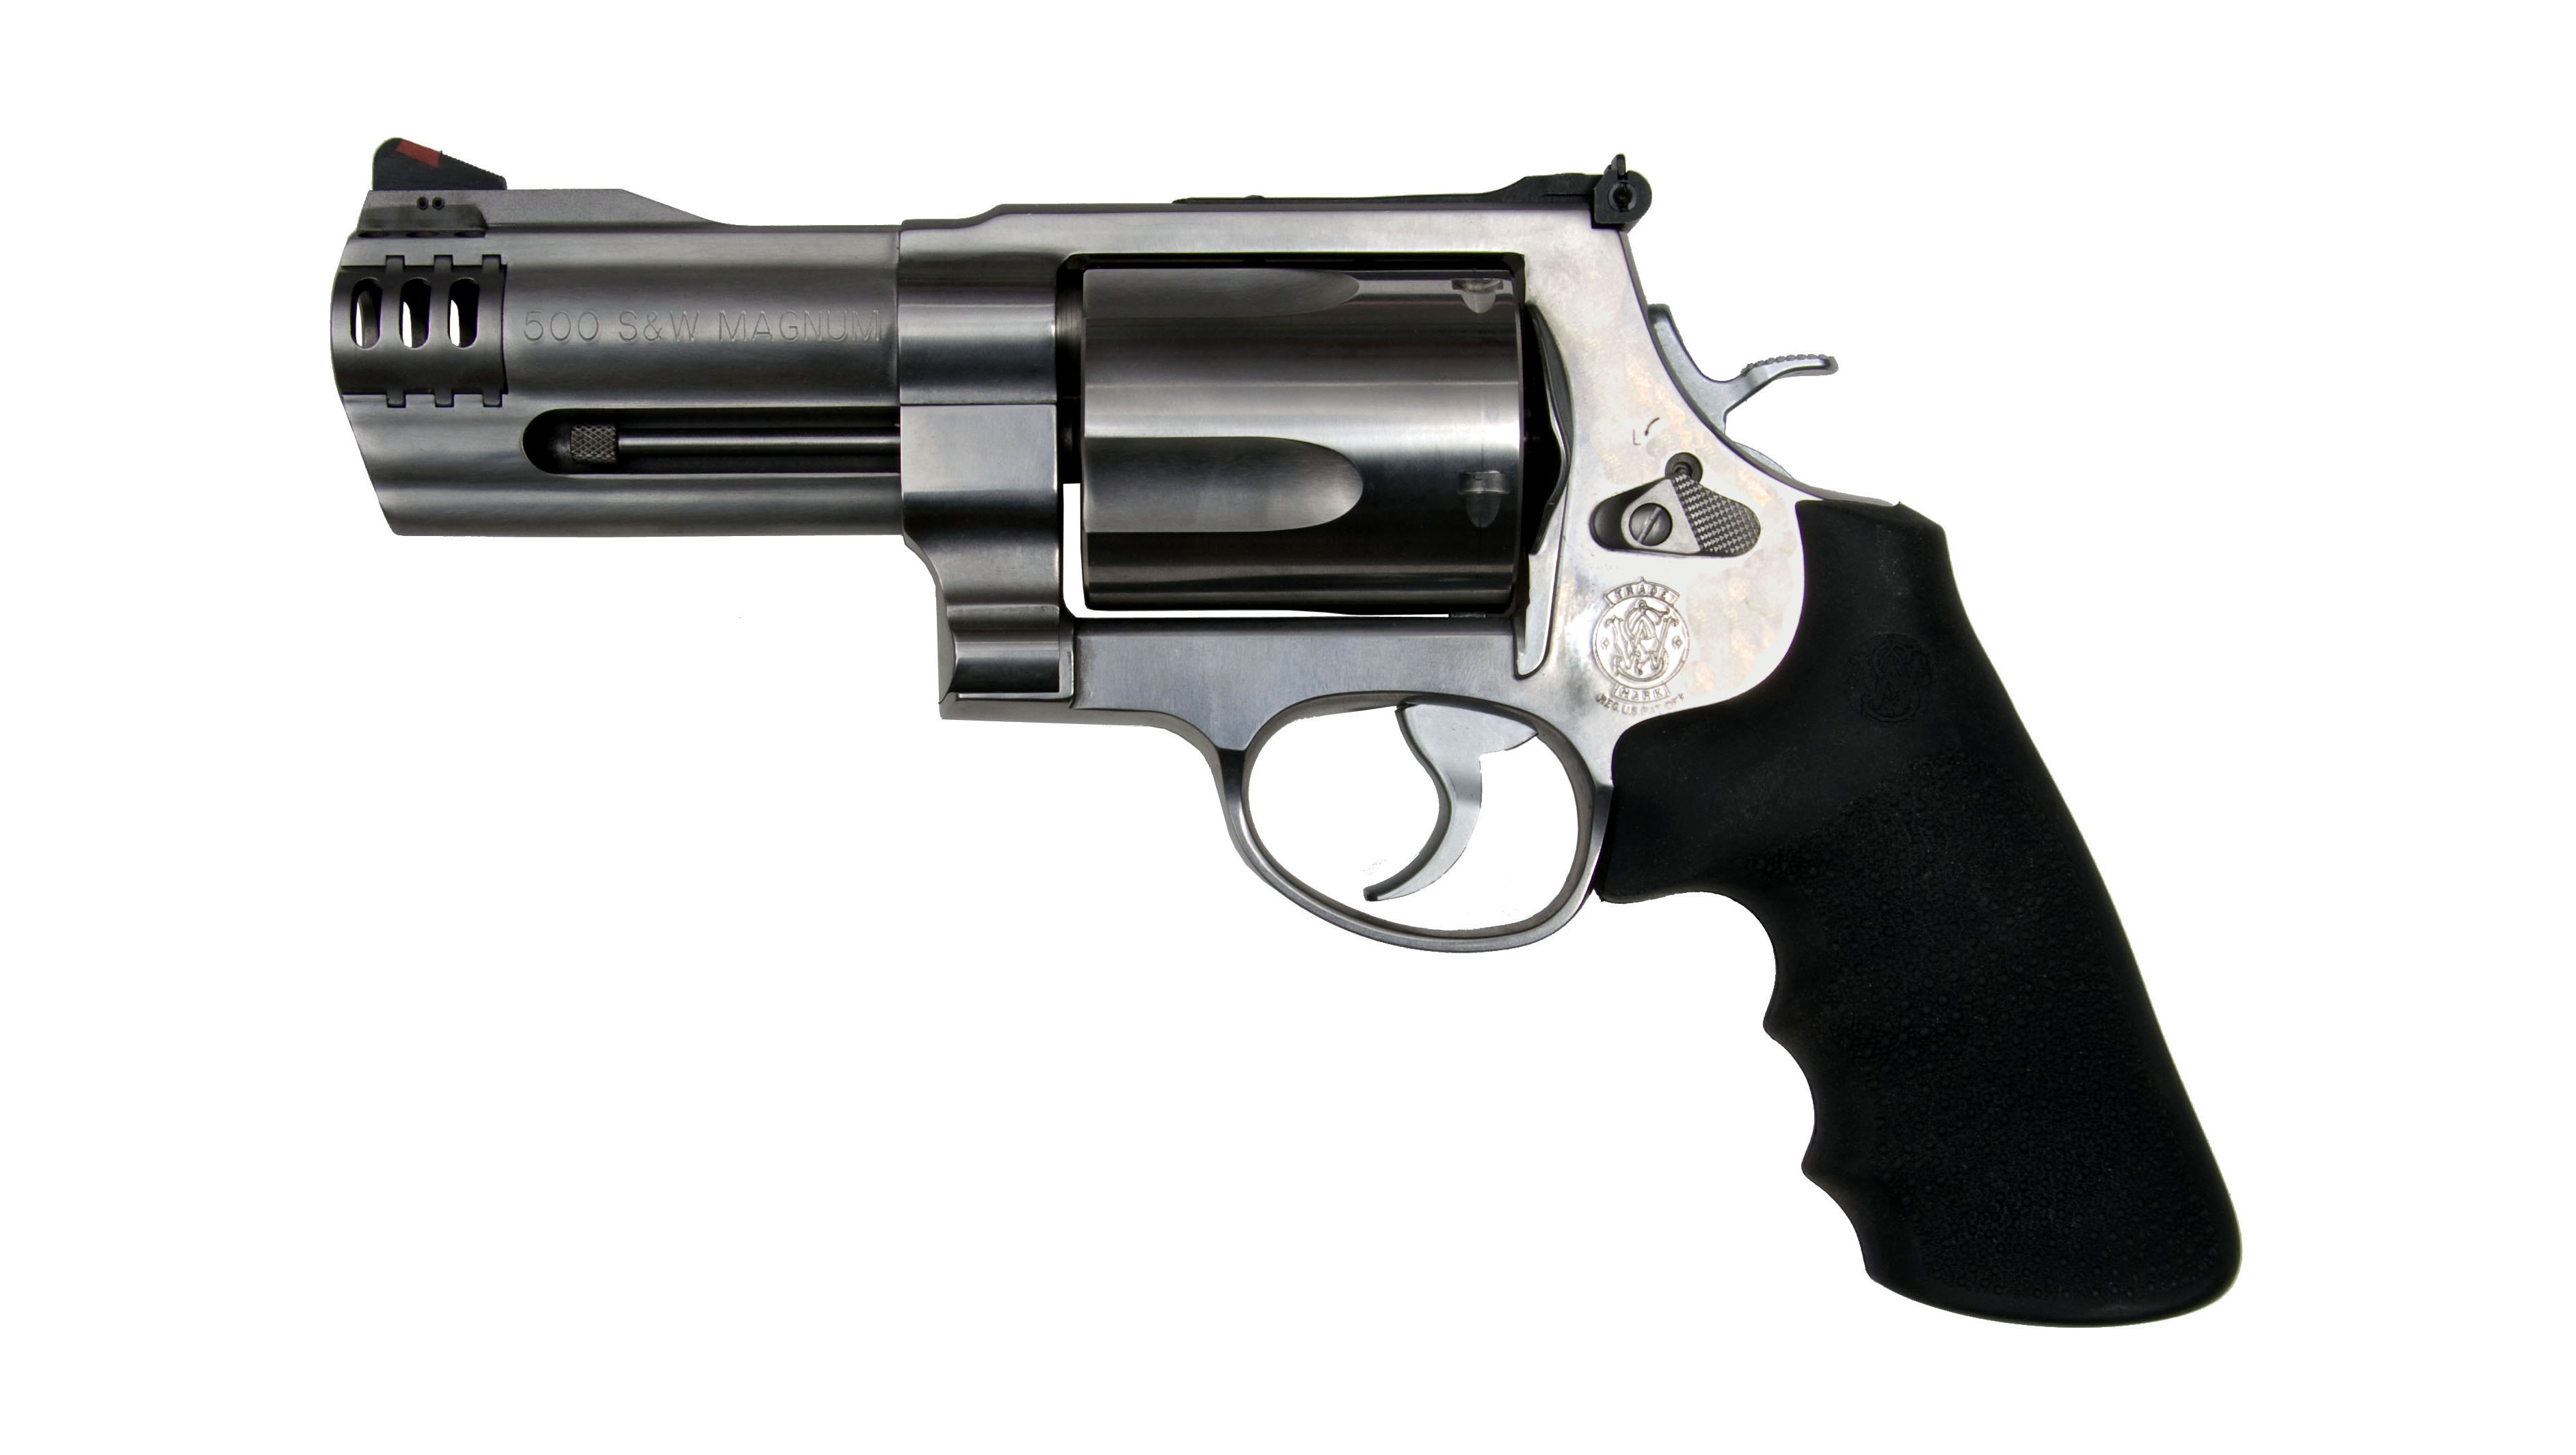 0_1513216214836_Smith_wesson_500_4_pollici_prezzo.jpg